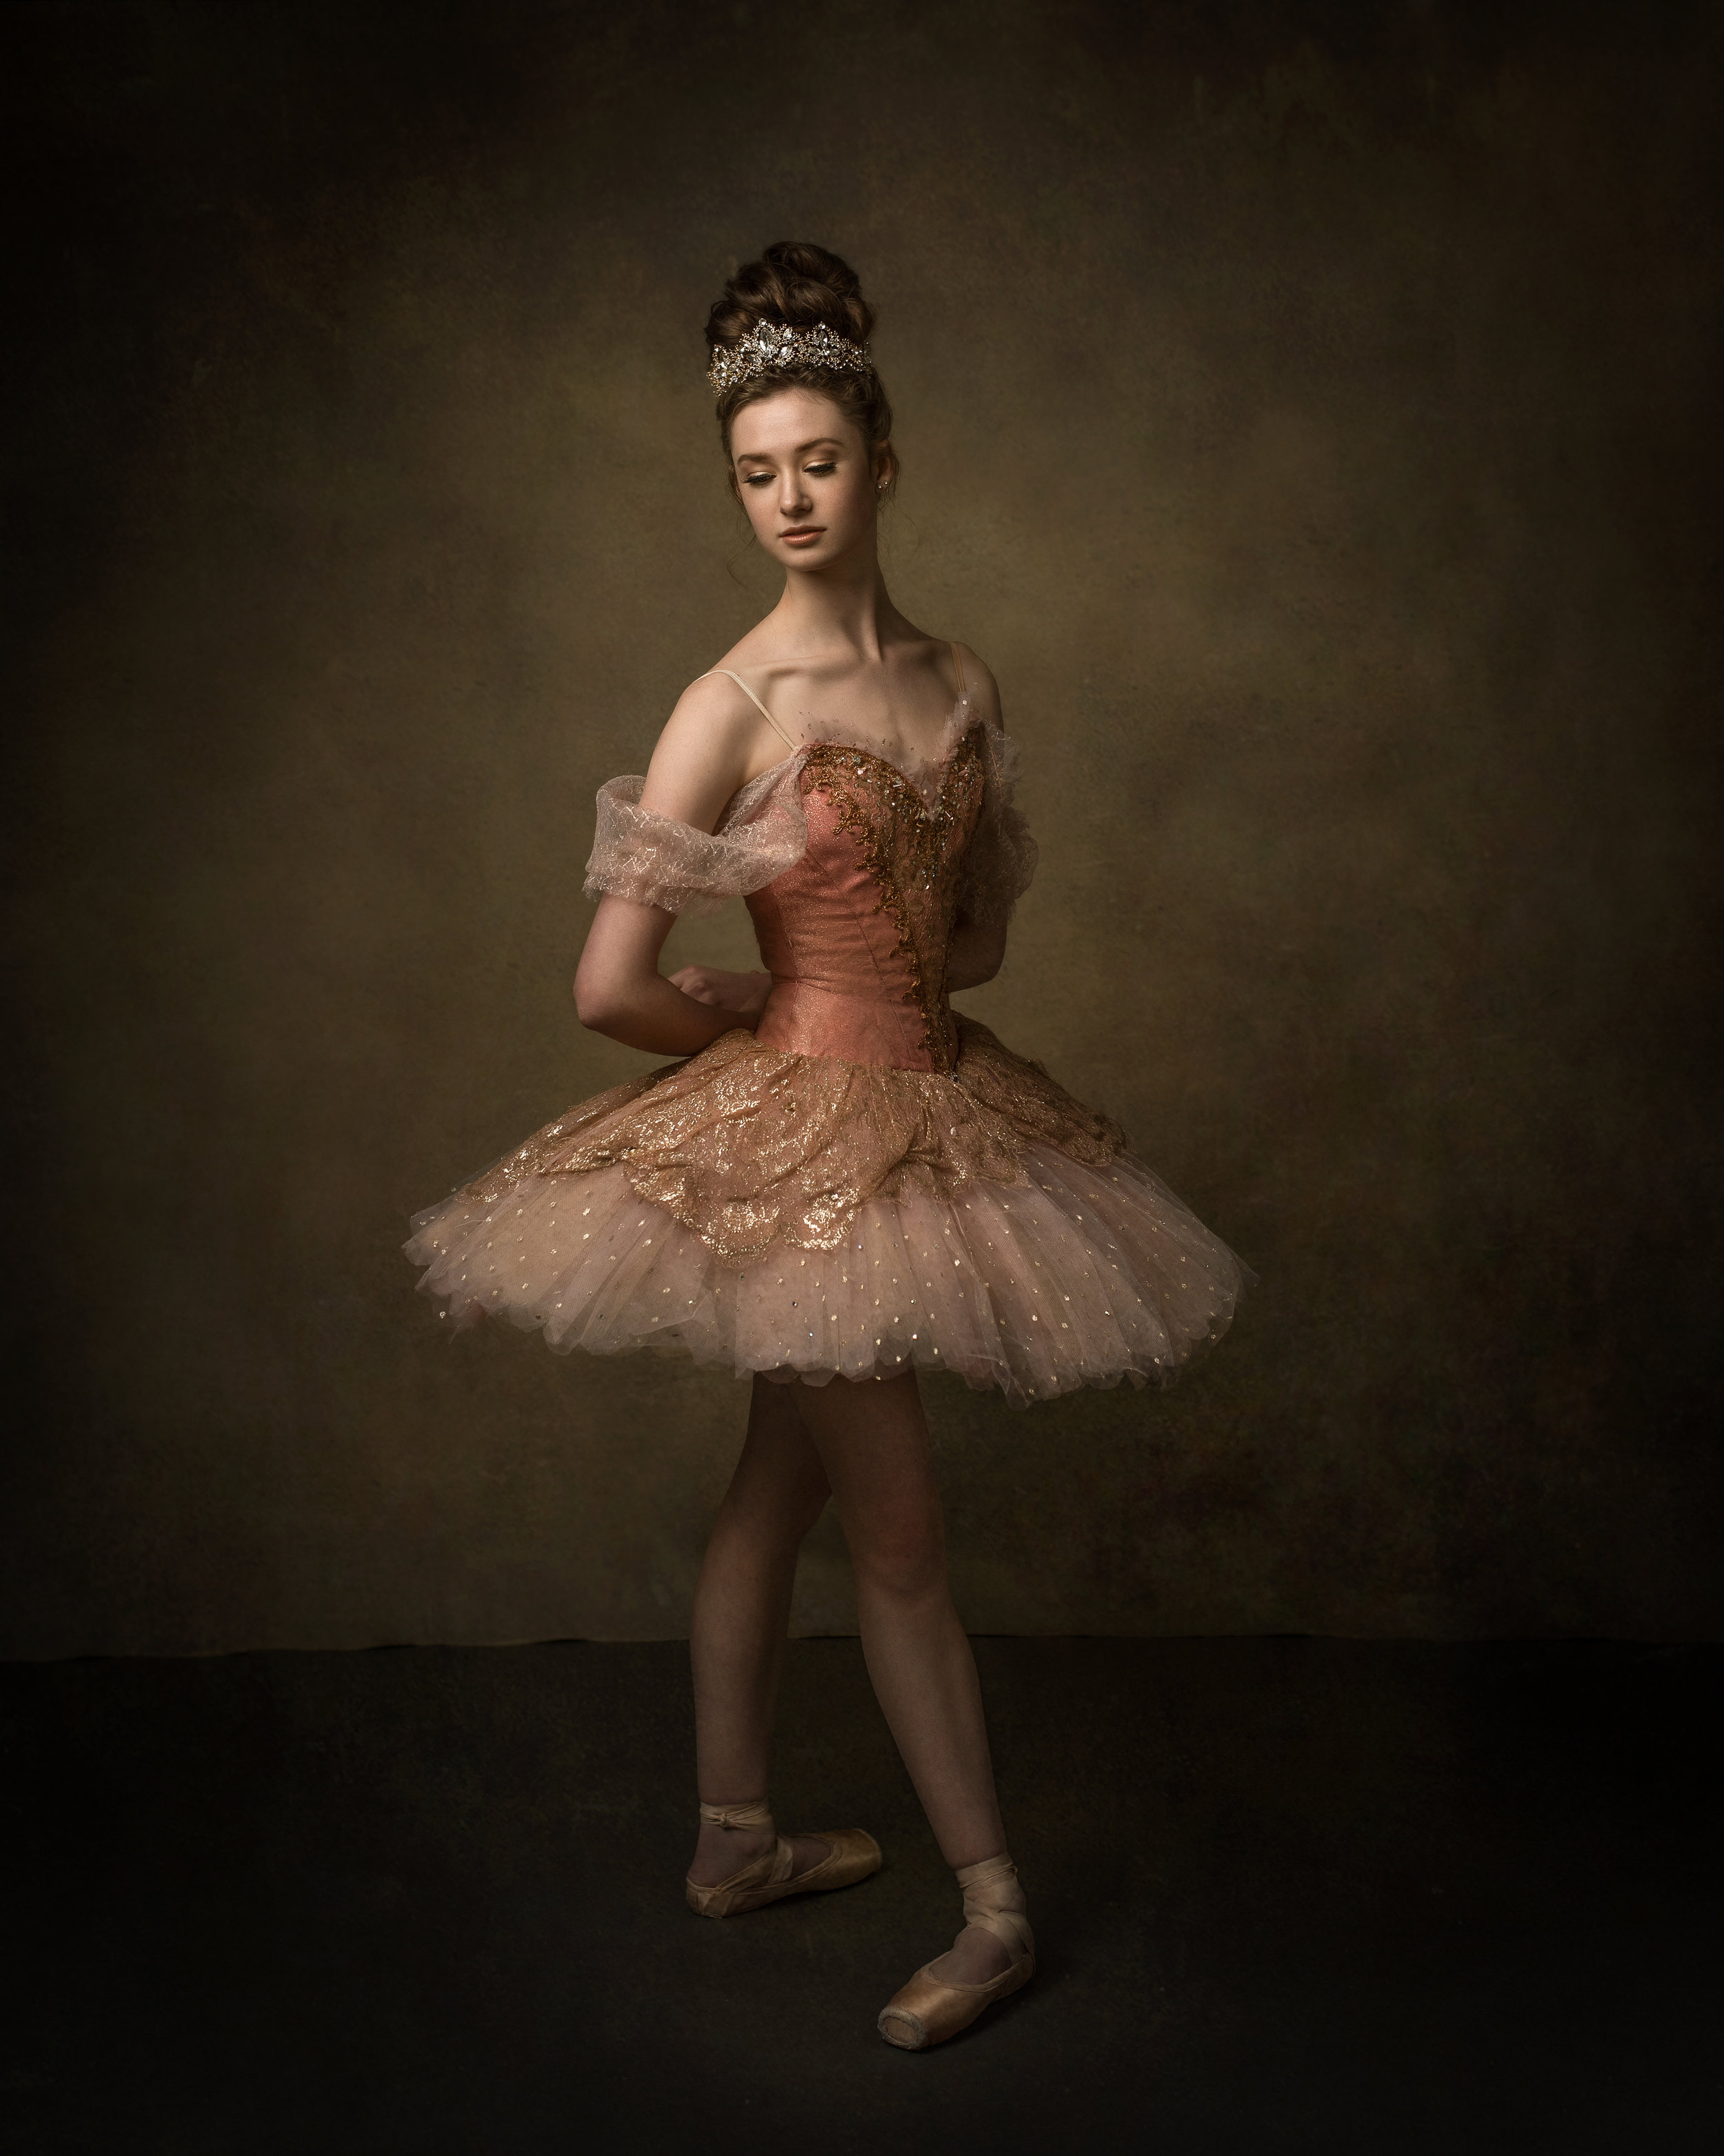 barbara-macferrin-photography-fine-art-ballerina-vintage-old-masters-fourth-position-sm.jpg